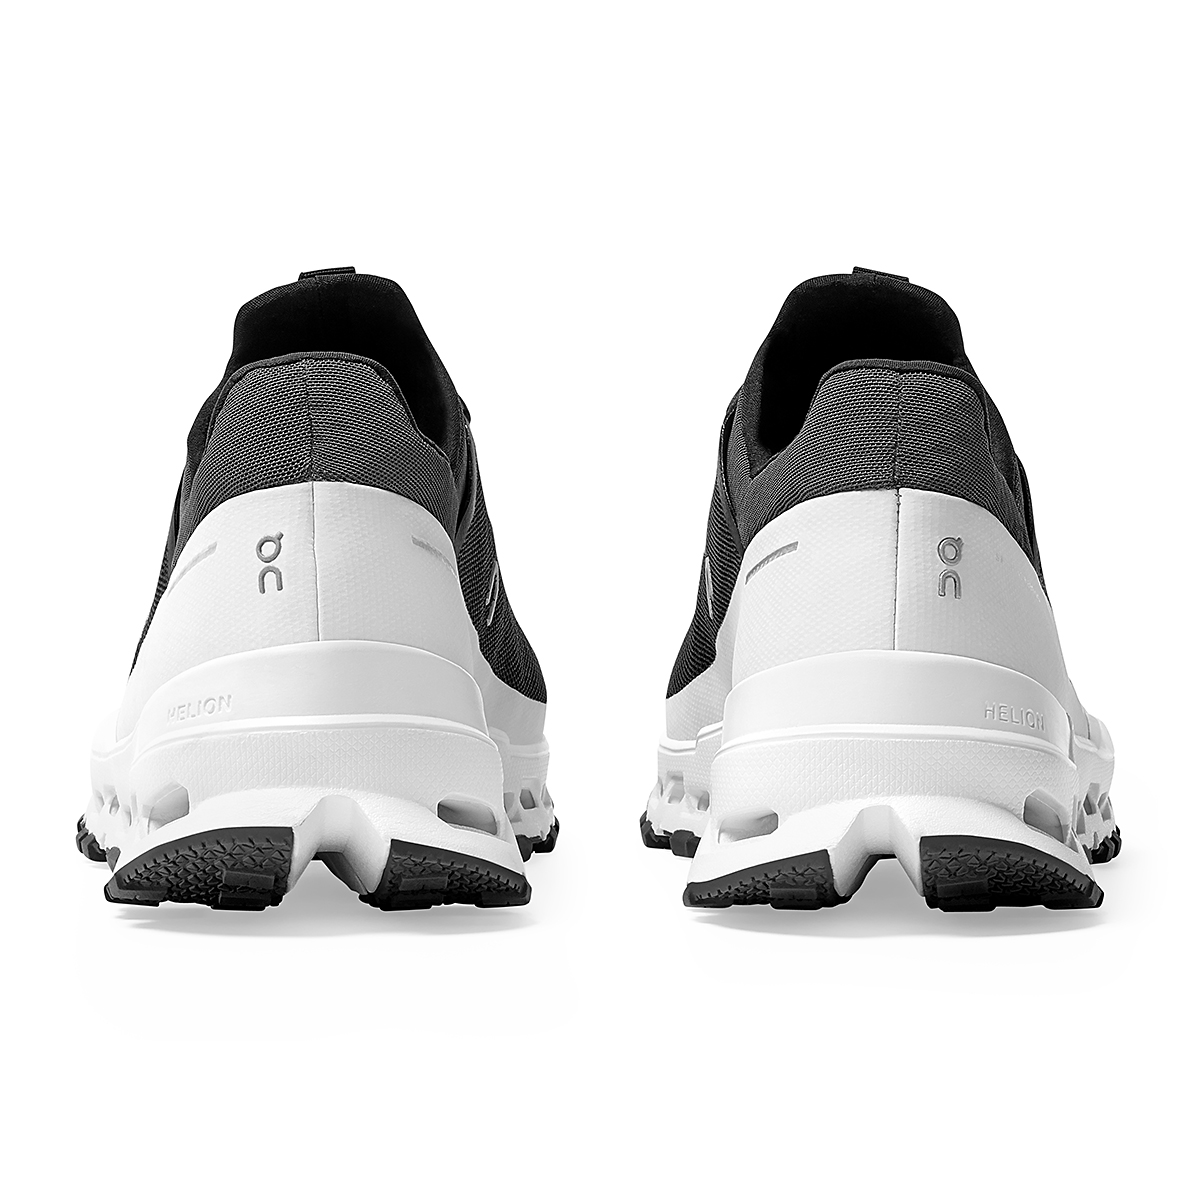 Men's On Cloudultra Trail-Running Shoes - Color: Black/White - Size: 7 - Width: Regular, Black/White, large, image 5